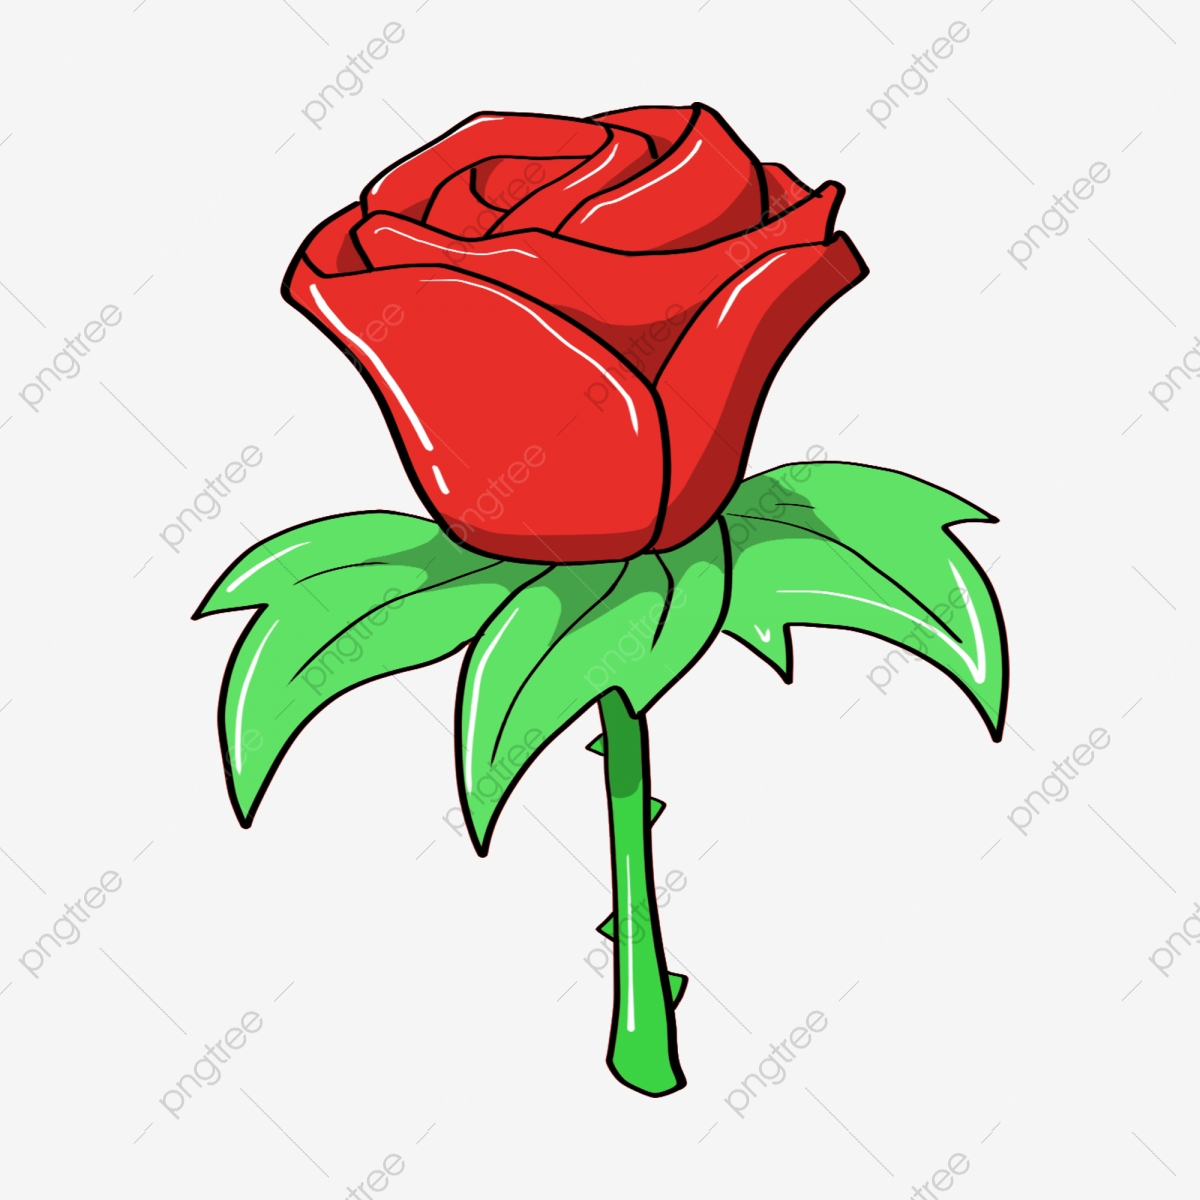 Cartoon Flower Red Flower Rose Love Related Flower Plant Background Decoration Illustration Png Transparent Clipart Image And Psd File For Free Download